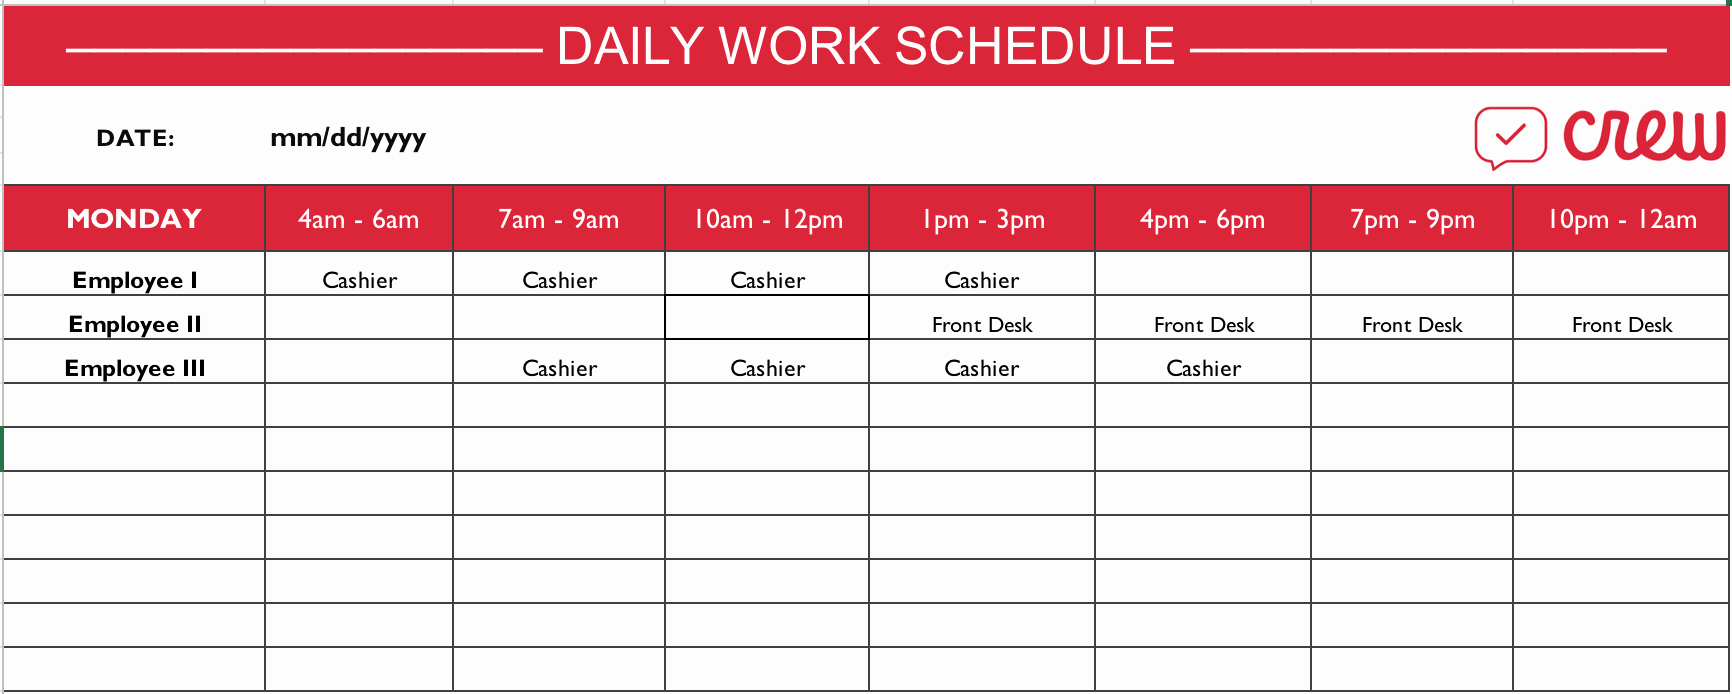 Work Schedule Template Weekly Elegant Free Daily Work Schedule Template Crew